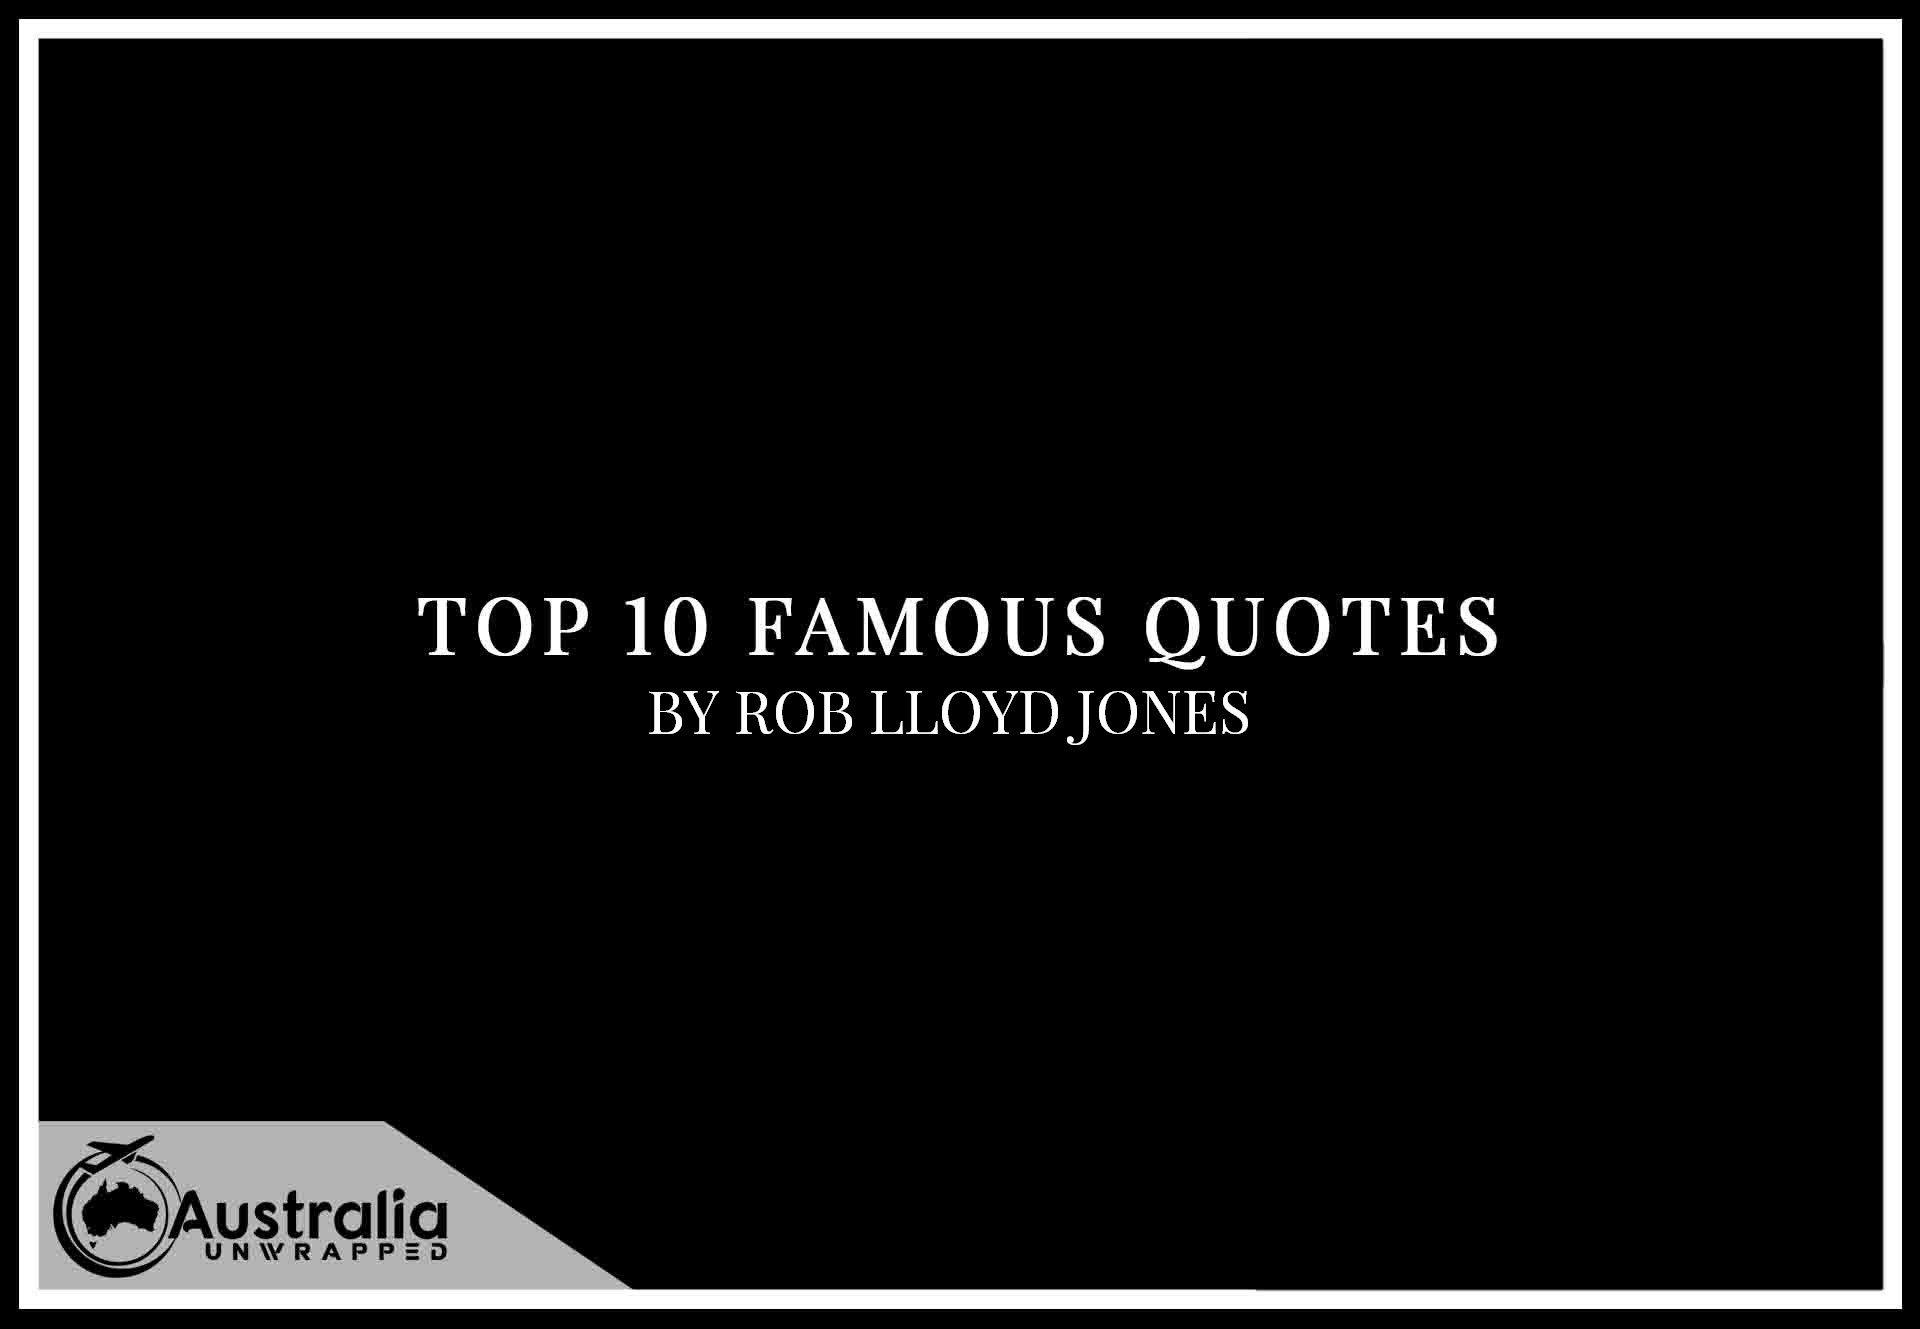 Top 10 Famous Quotes by Author Rob Lloyd Jones